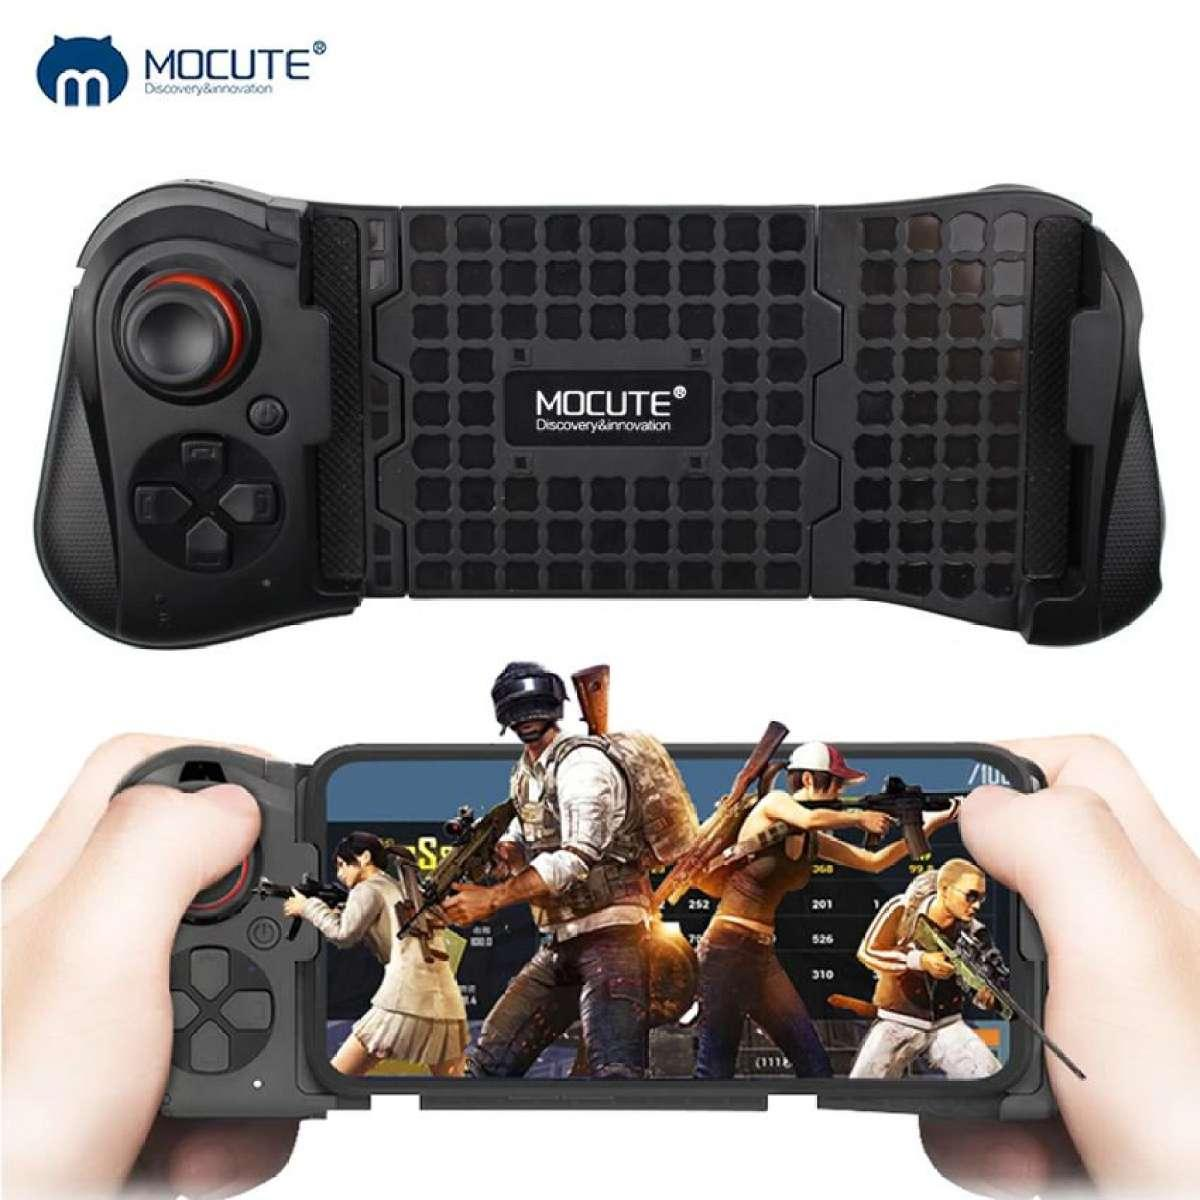 MOCUTE 058 Game Pad wireless Bluetooth Controller Joystick Remote Control  Gamepad for Phone IOS & Android Gamingpad (Black)